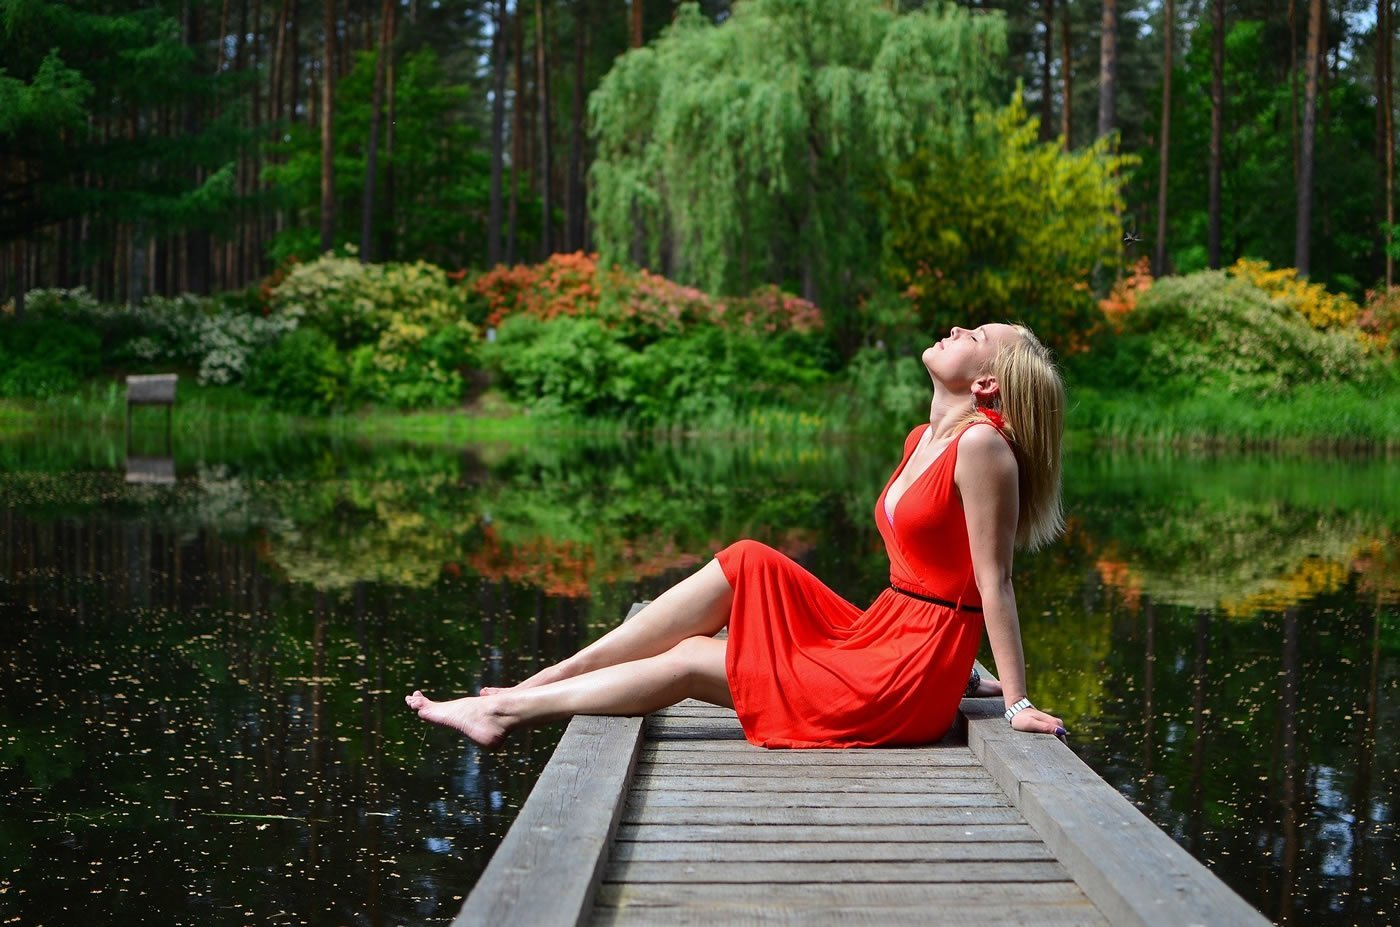 This shows a woman relaxing by a lake